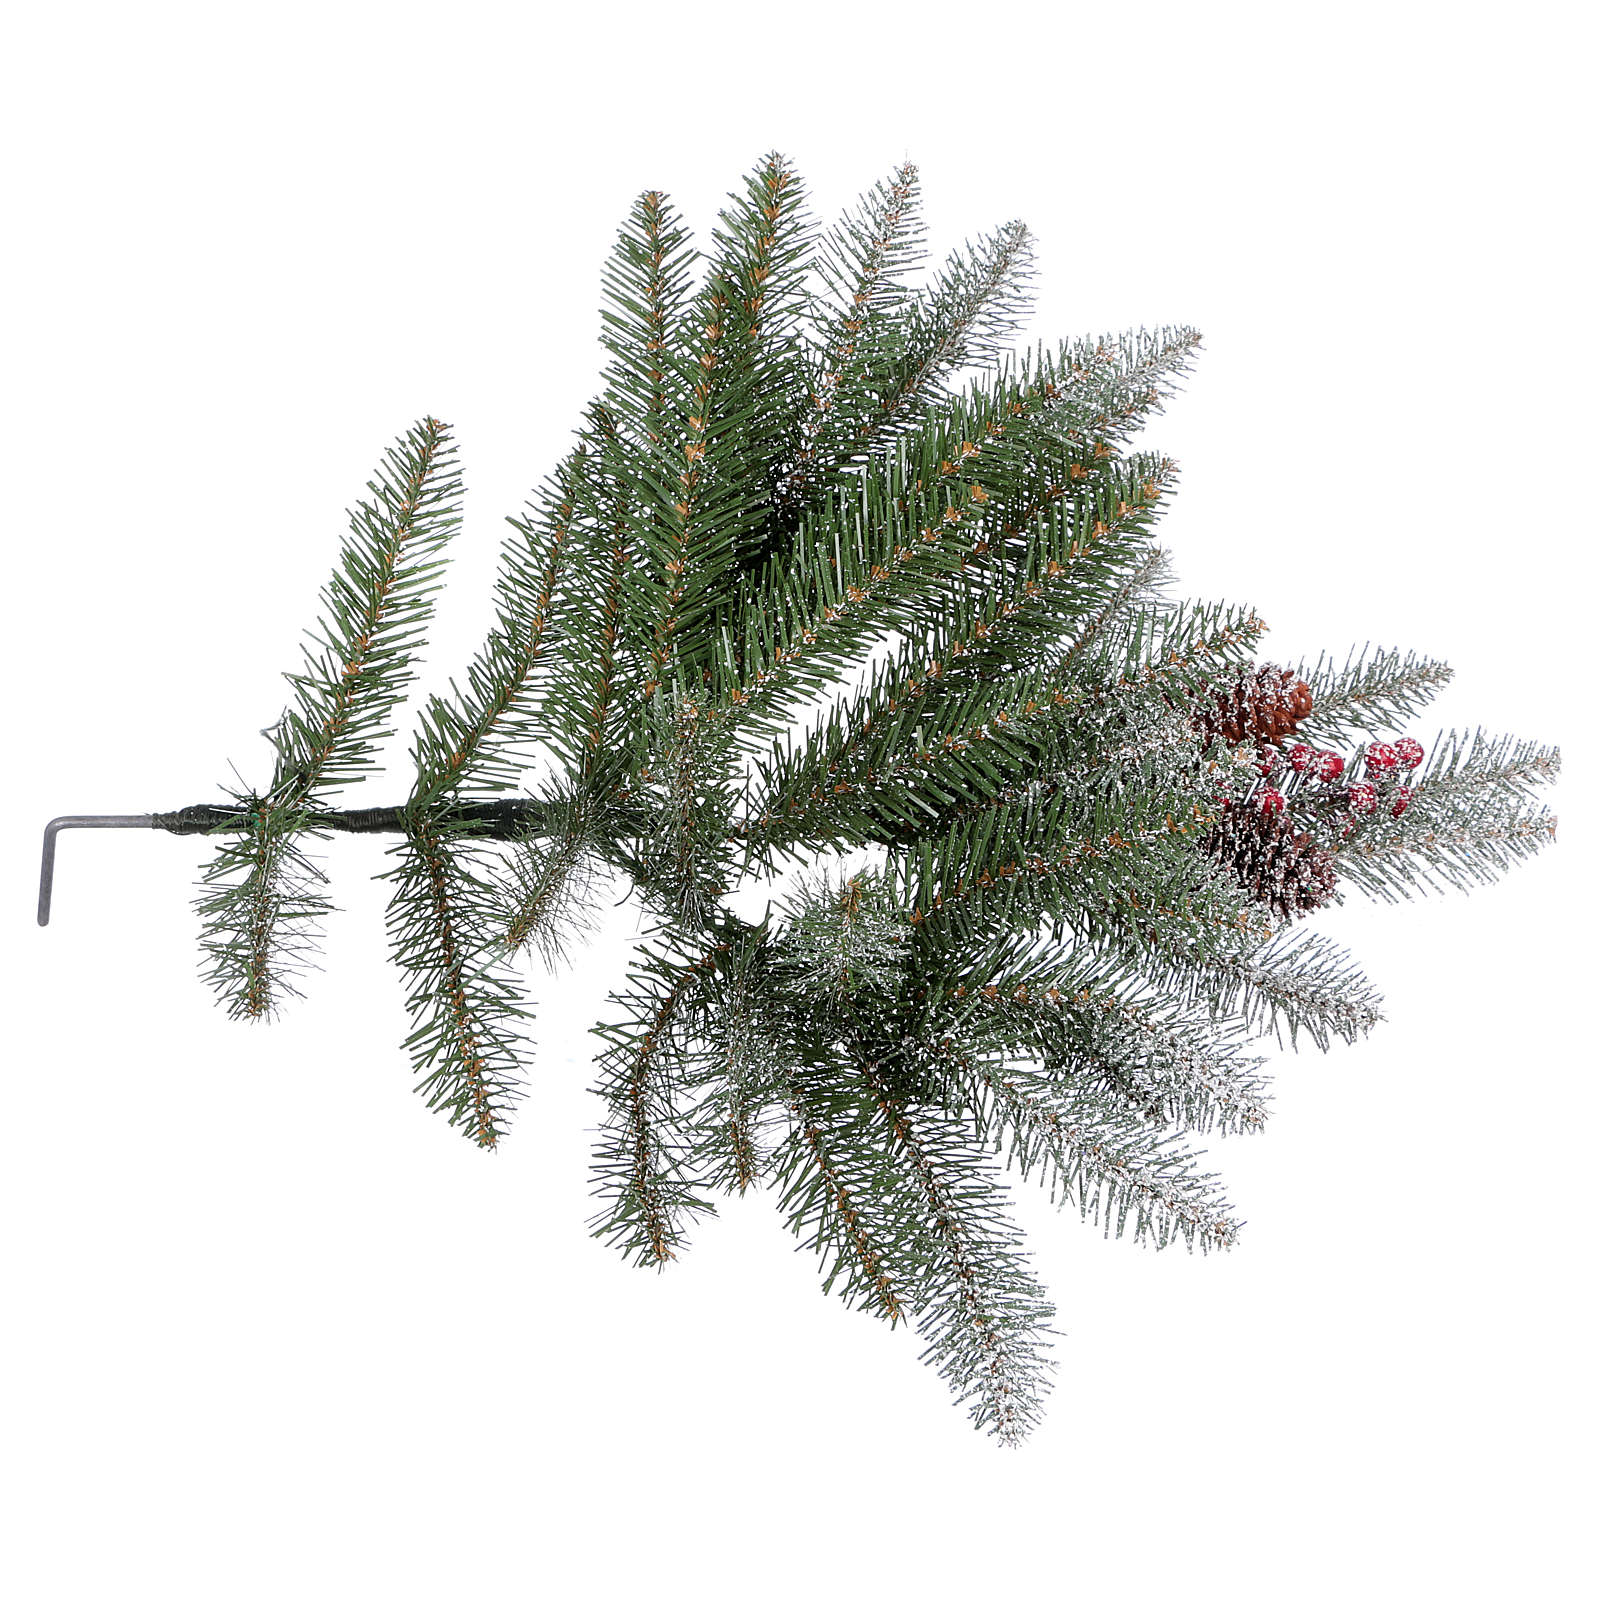 Christmas Tree With Pine Cones And Berries: Christmas Tree 240 Cm, Flocked Dunhil With Pine Cones And